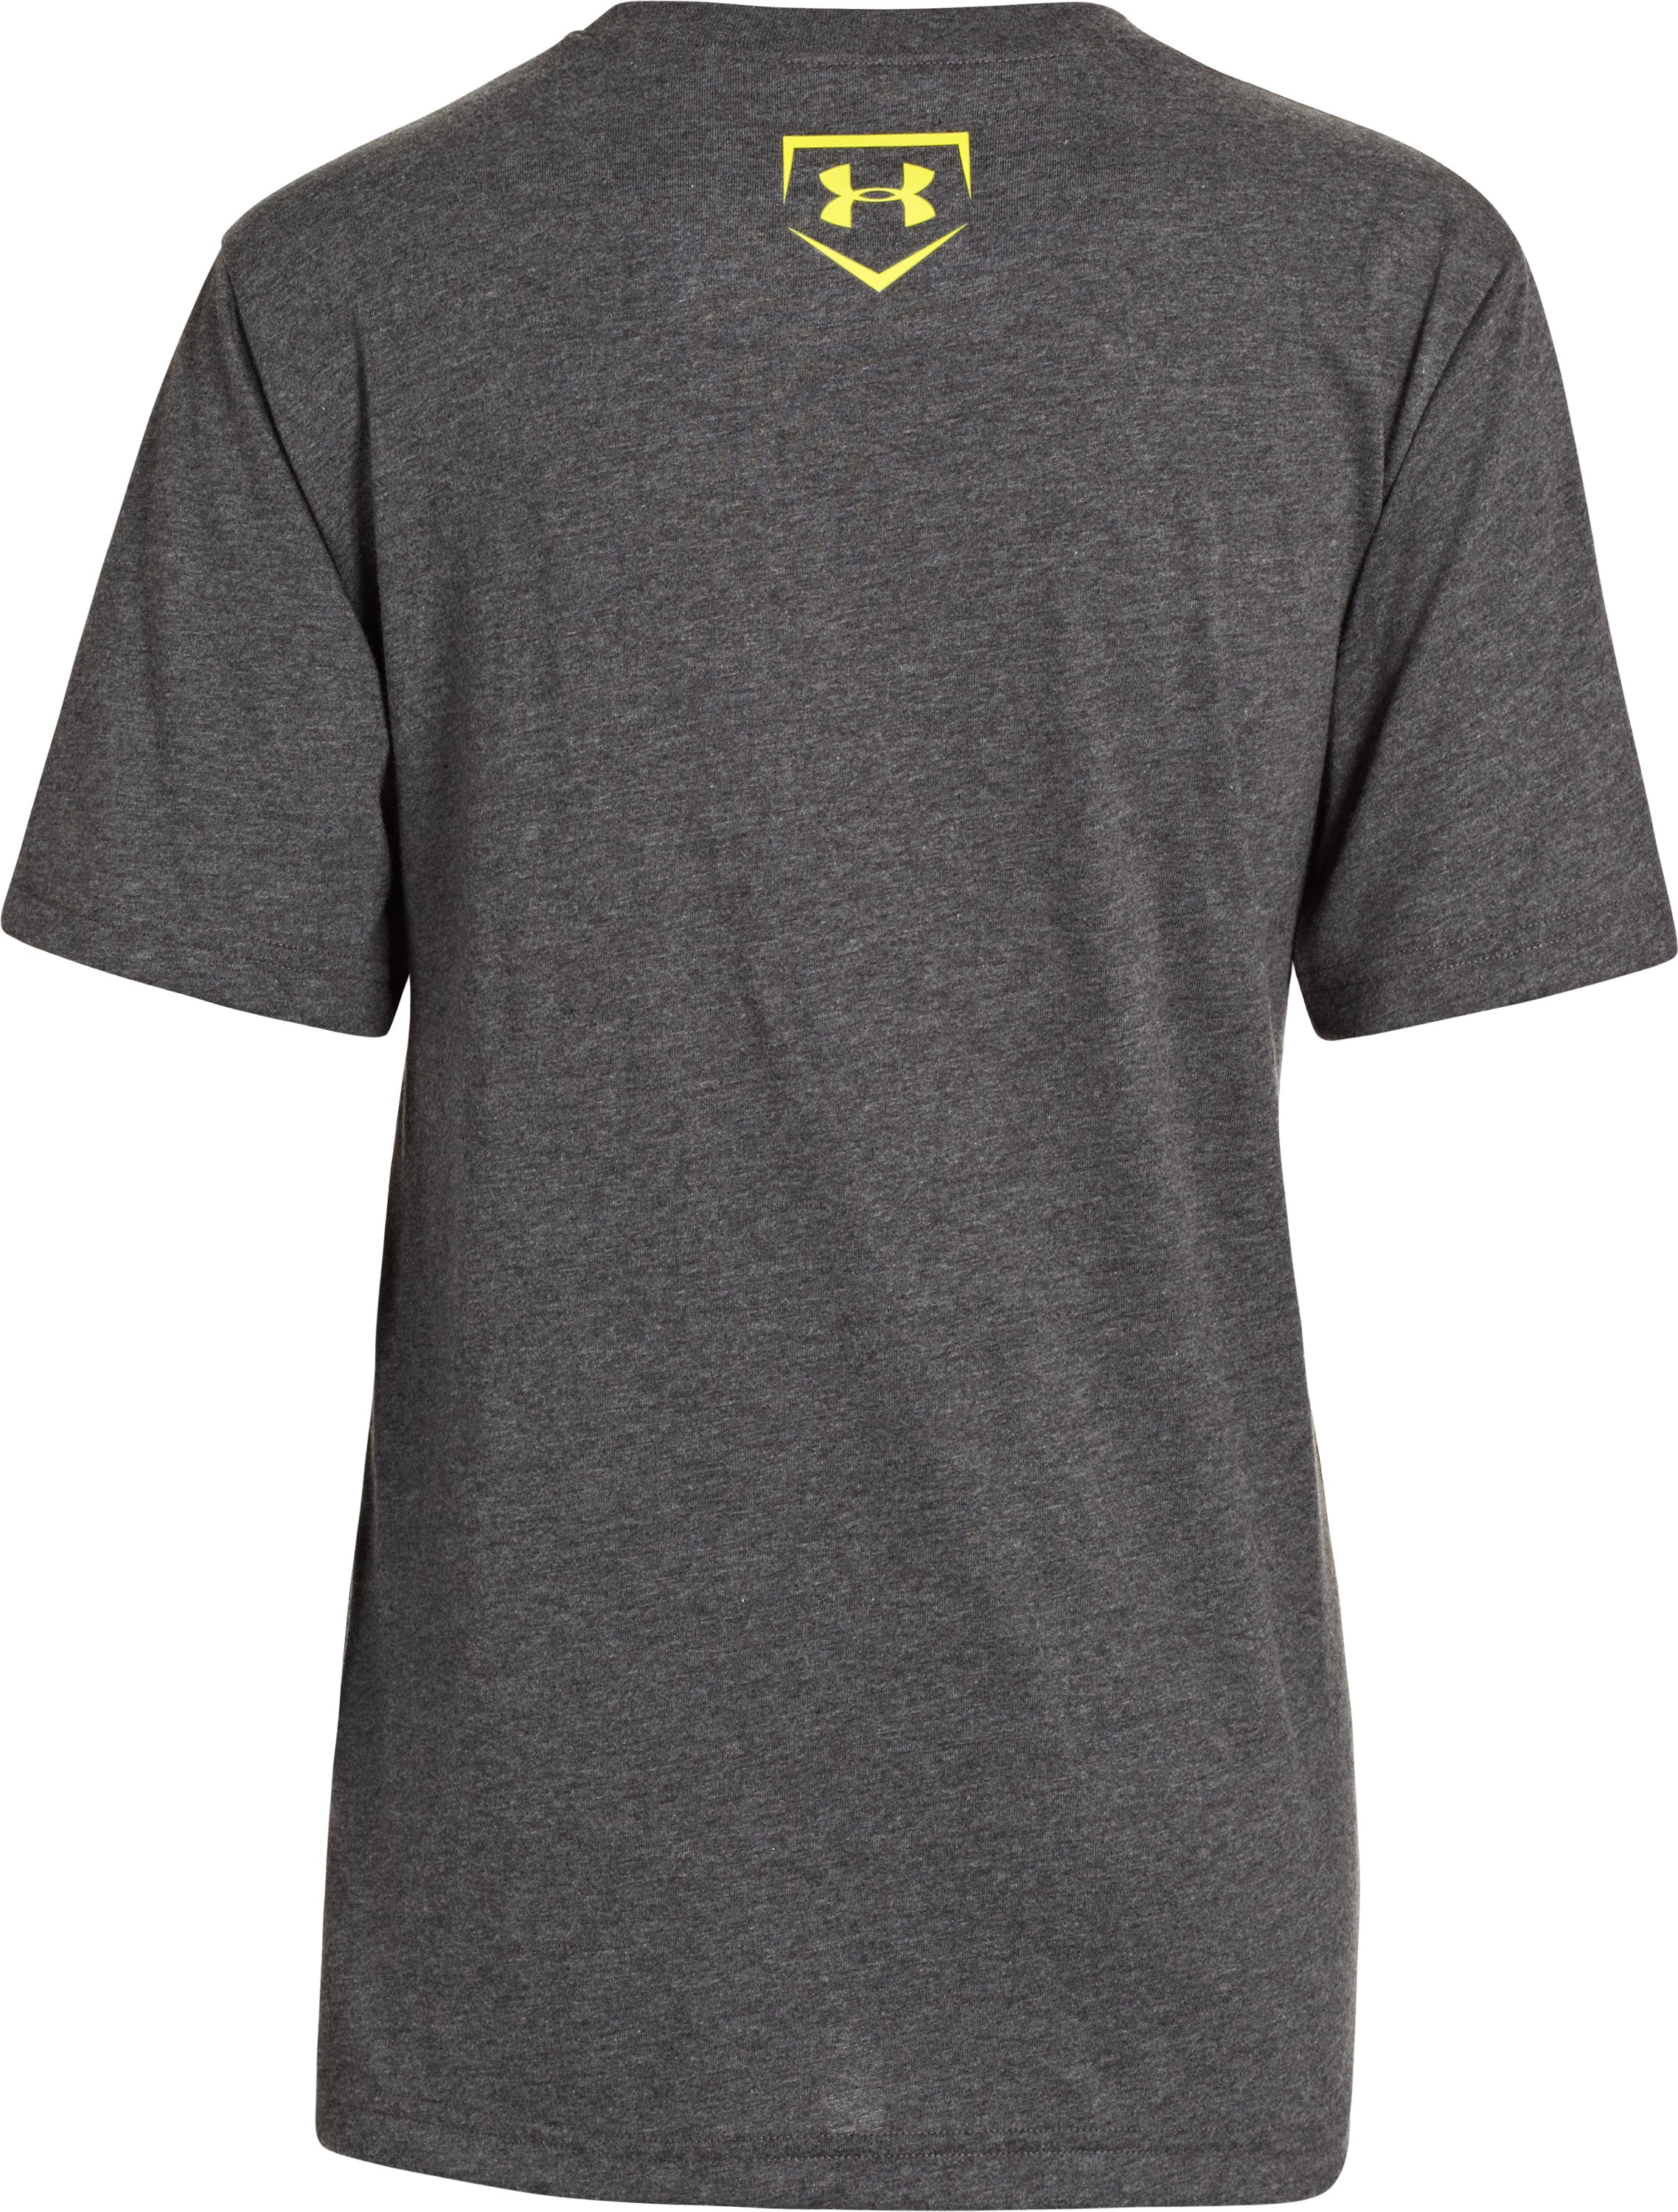 Boys' UA Clutch T-Shirt, Carbon Heather